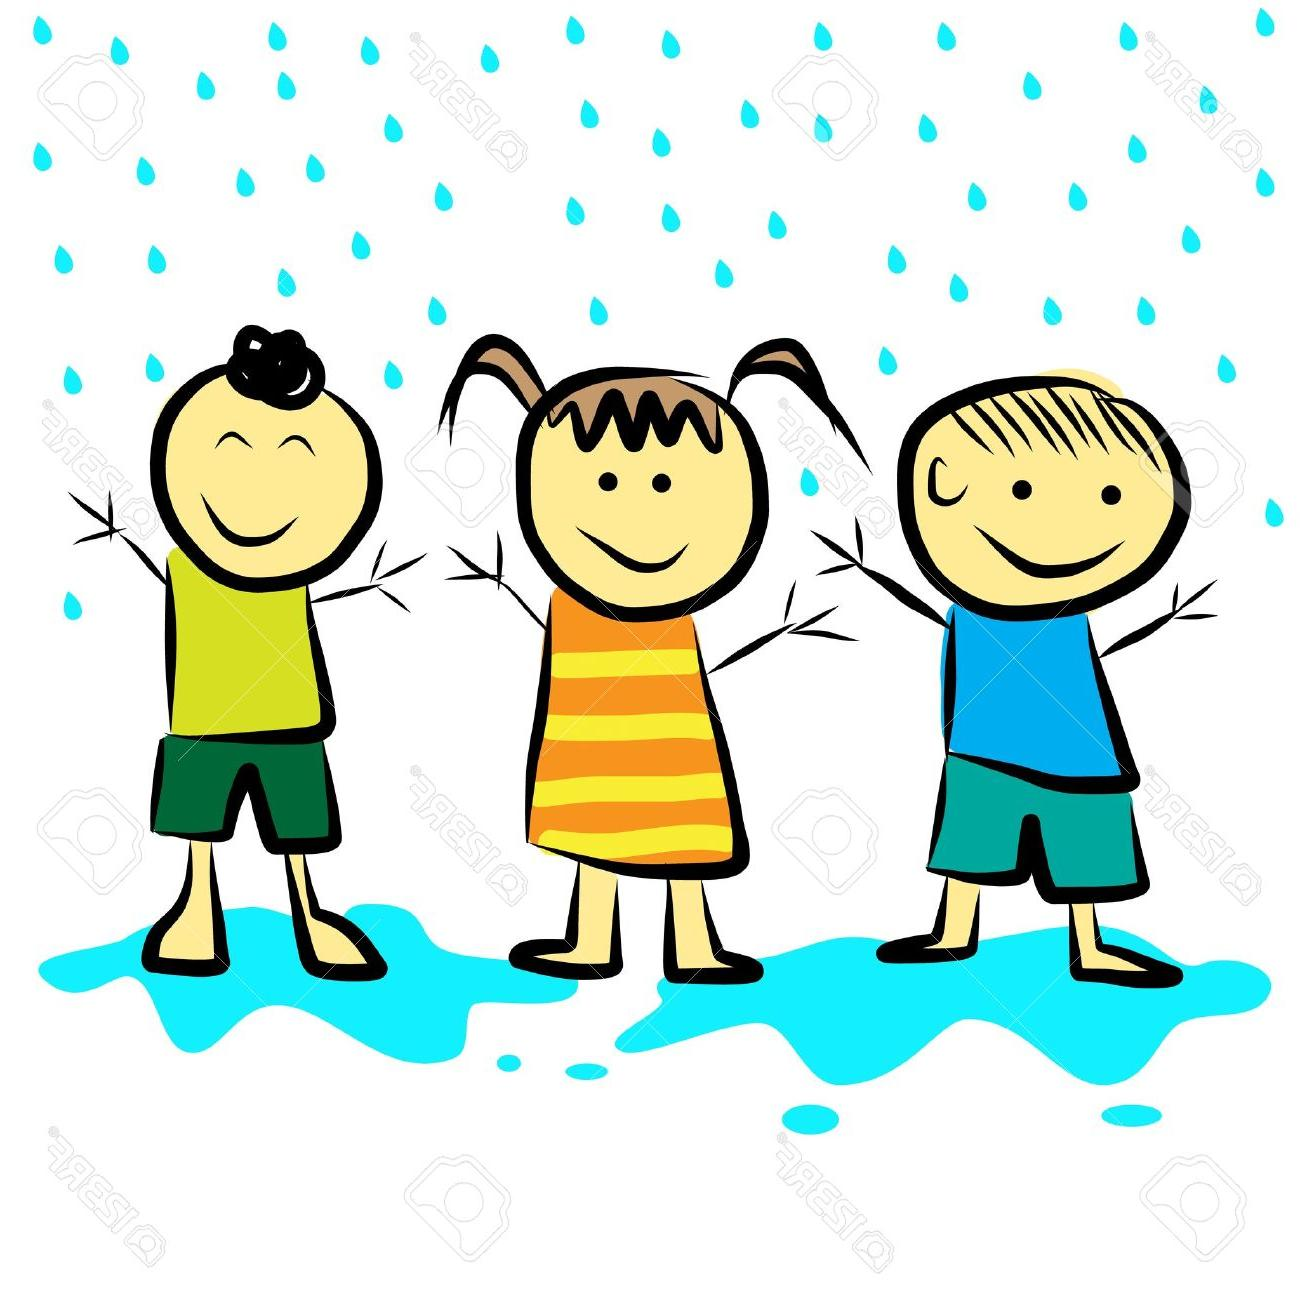 1300x1300 Best Dancing In The Rain Clip Art Image Free Vector Art, Images